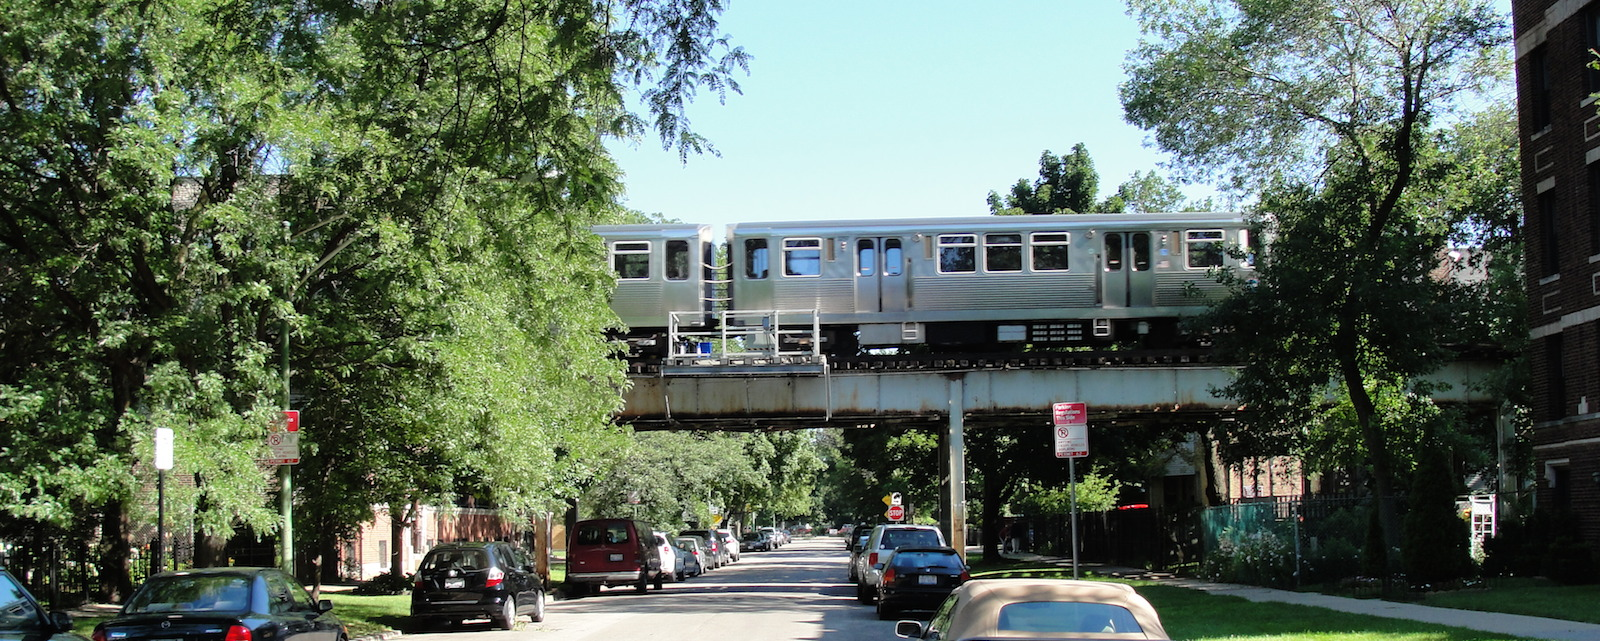 Residential trees and one of Chicago's elevated commuter trains